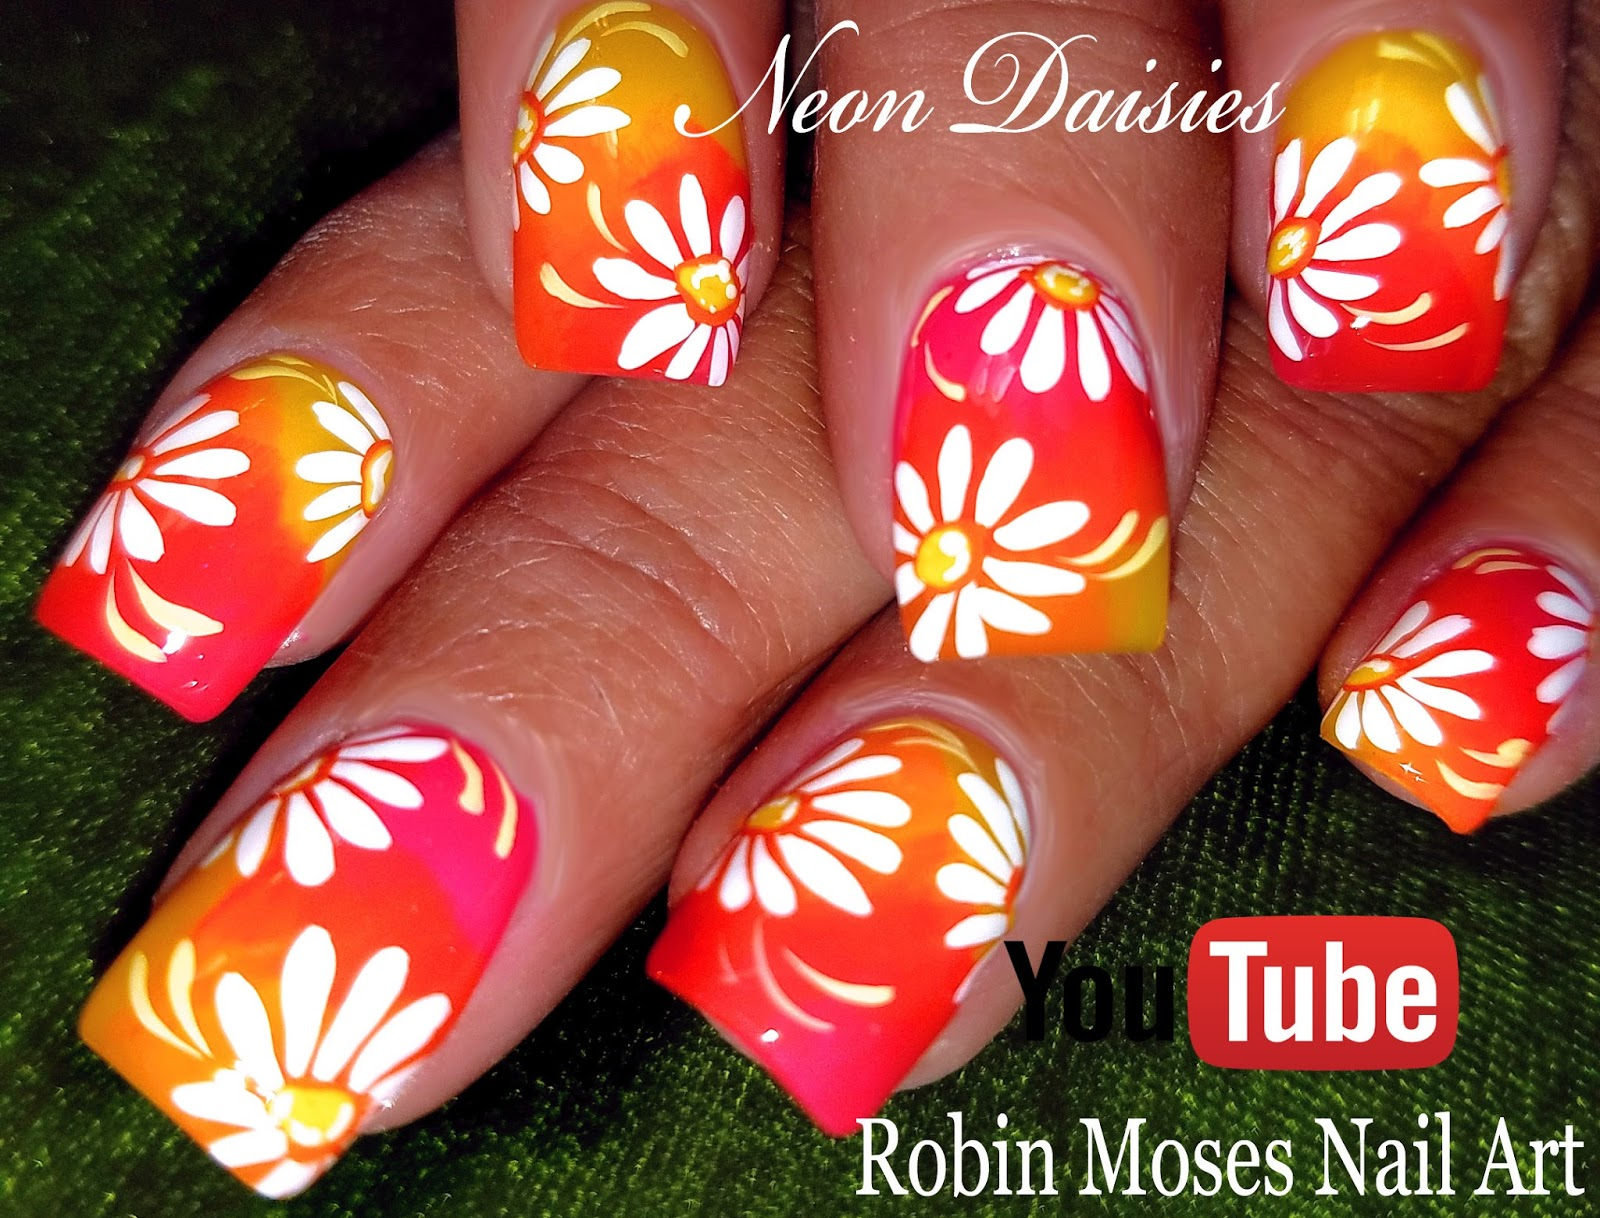 Nail Art By Robin Moses Diy Neon Daisy Nails Hot Flower Nail Art